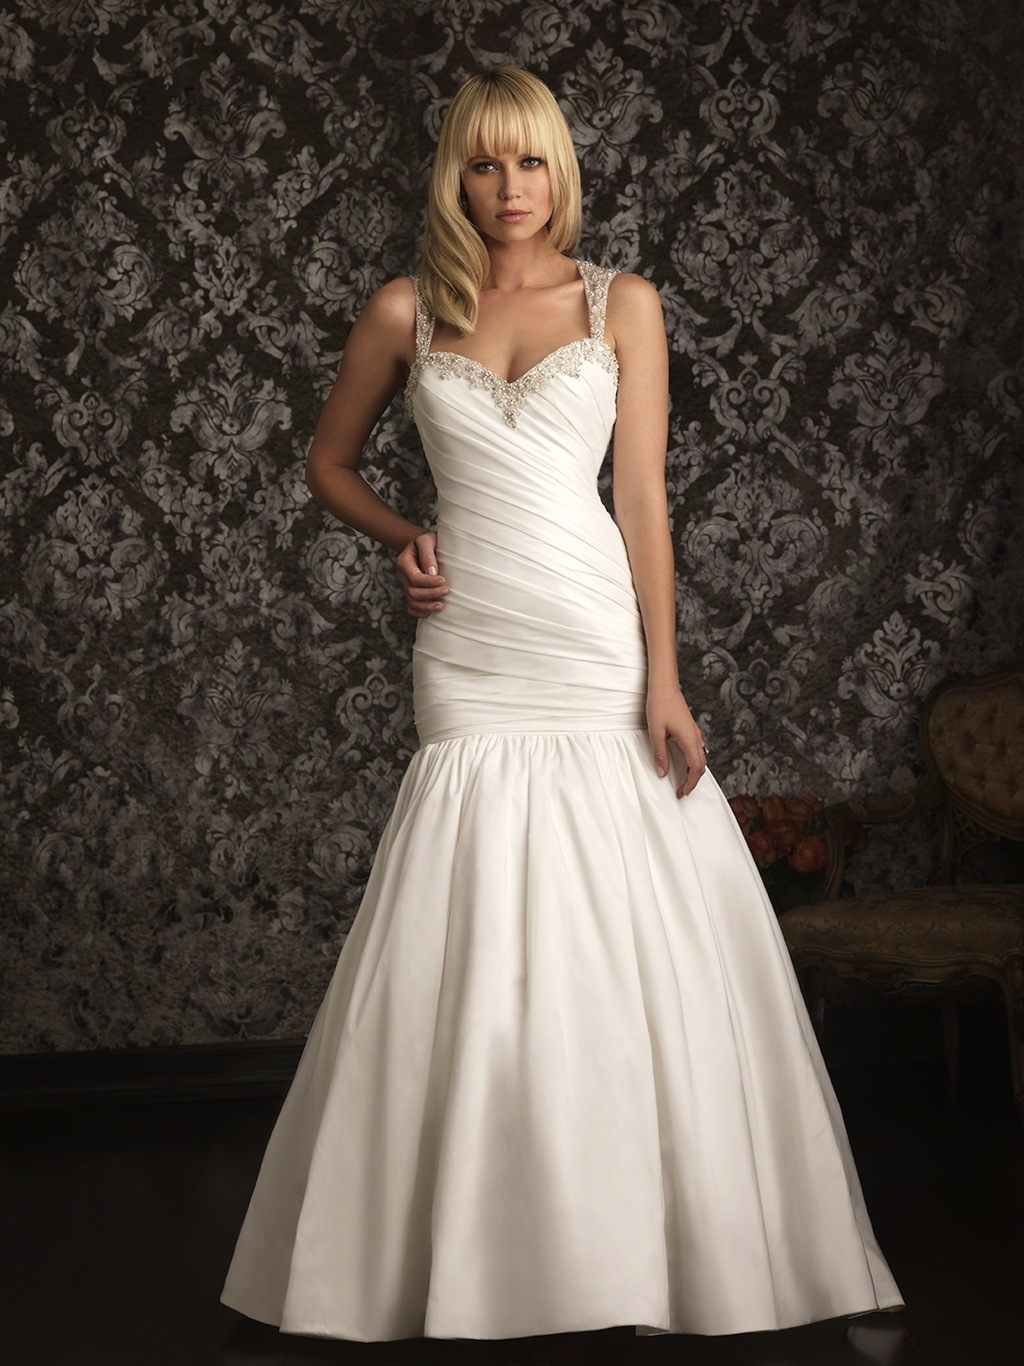 Allure Bridals Wedding Dress Bridal Gown Allure Collection 2013 9020F